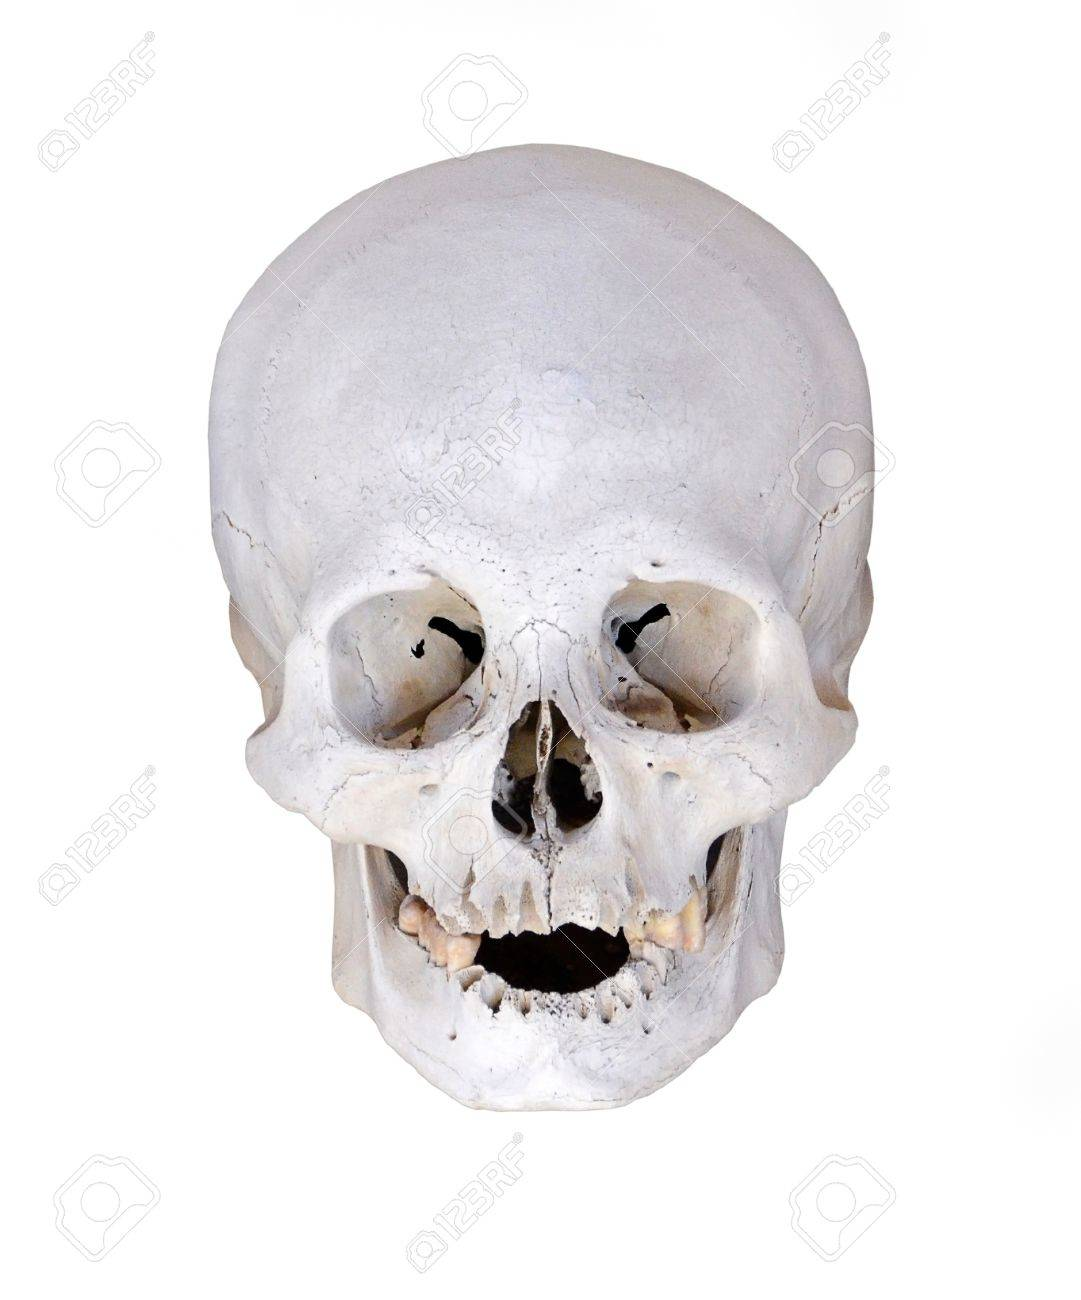 human skull from excavations isolated on white background stock, Skeleton